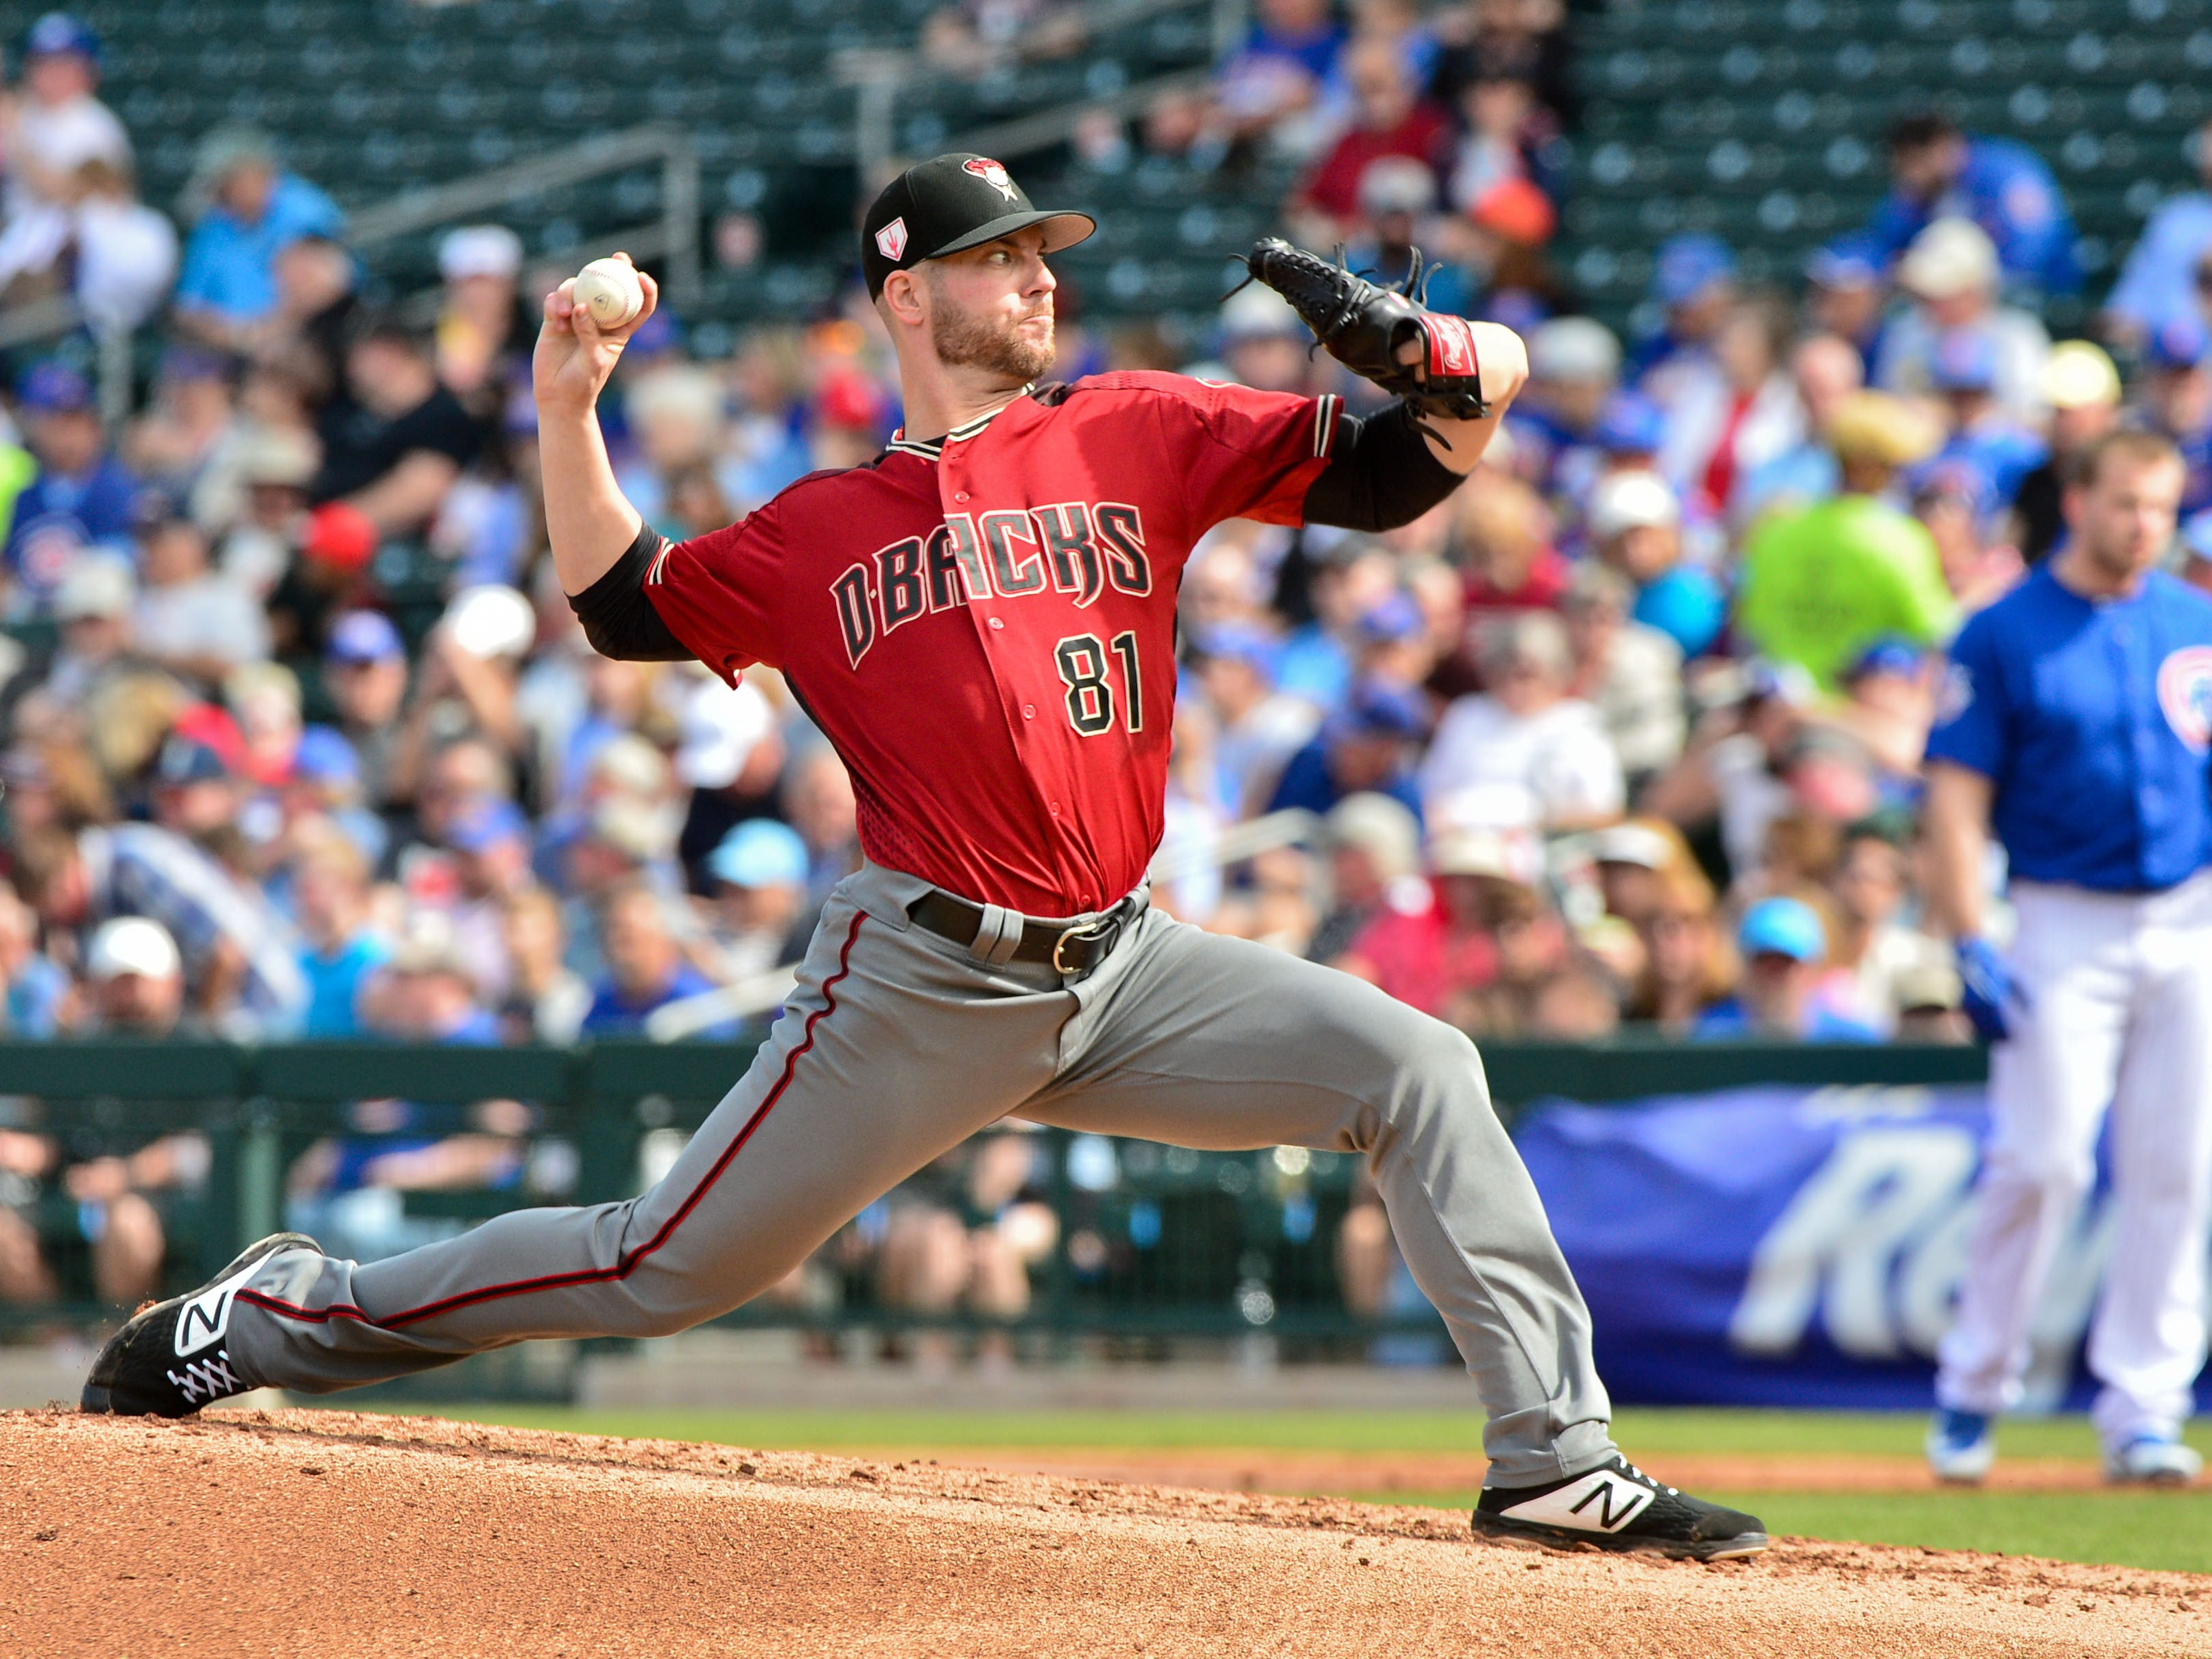 Feb 26, 2019: Arizona Diamondbacks relief pitcher Kevin Ginkel (81) throws during the first inning against the Chicago Cubs at Sloan Park.